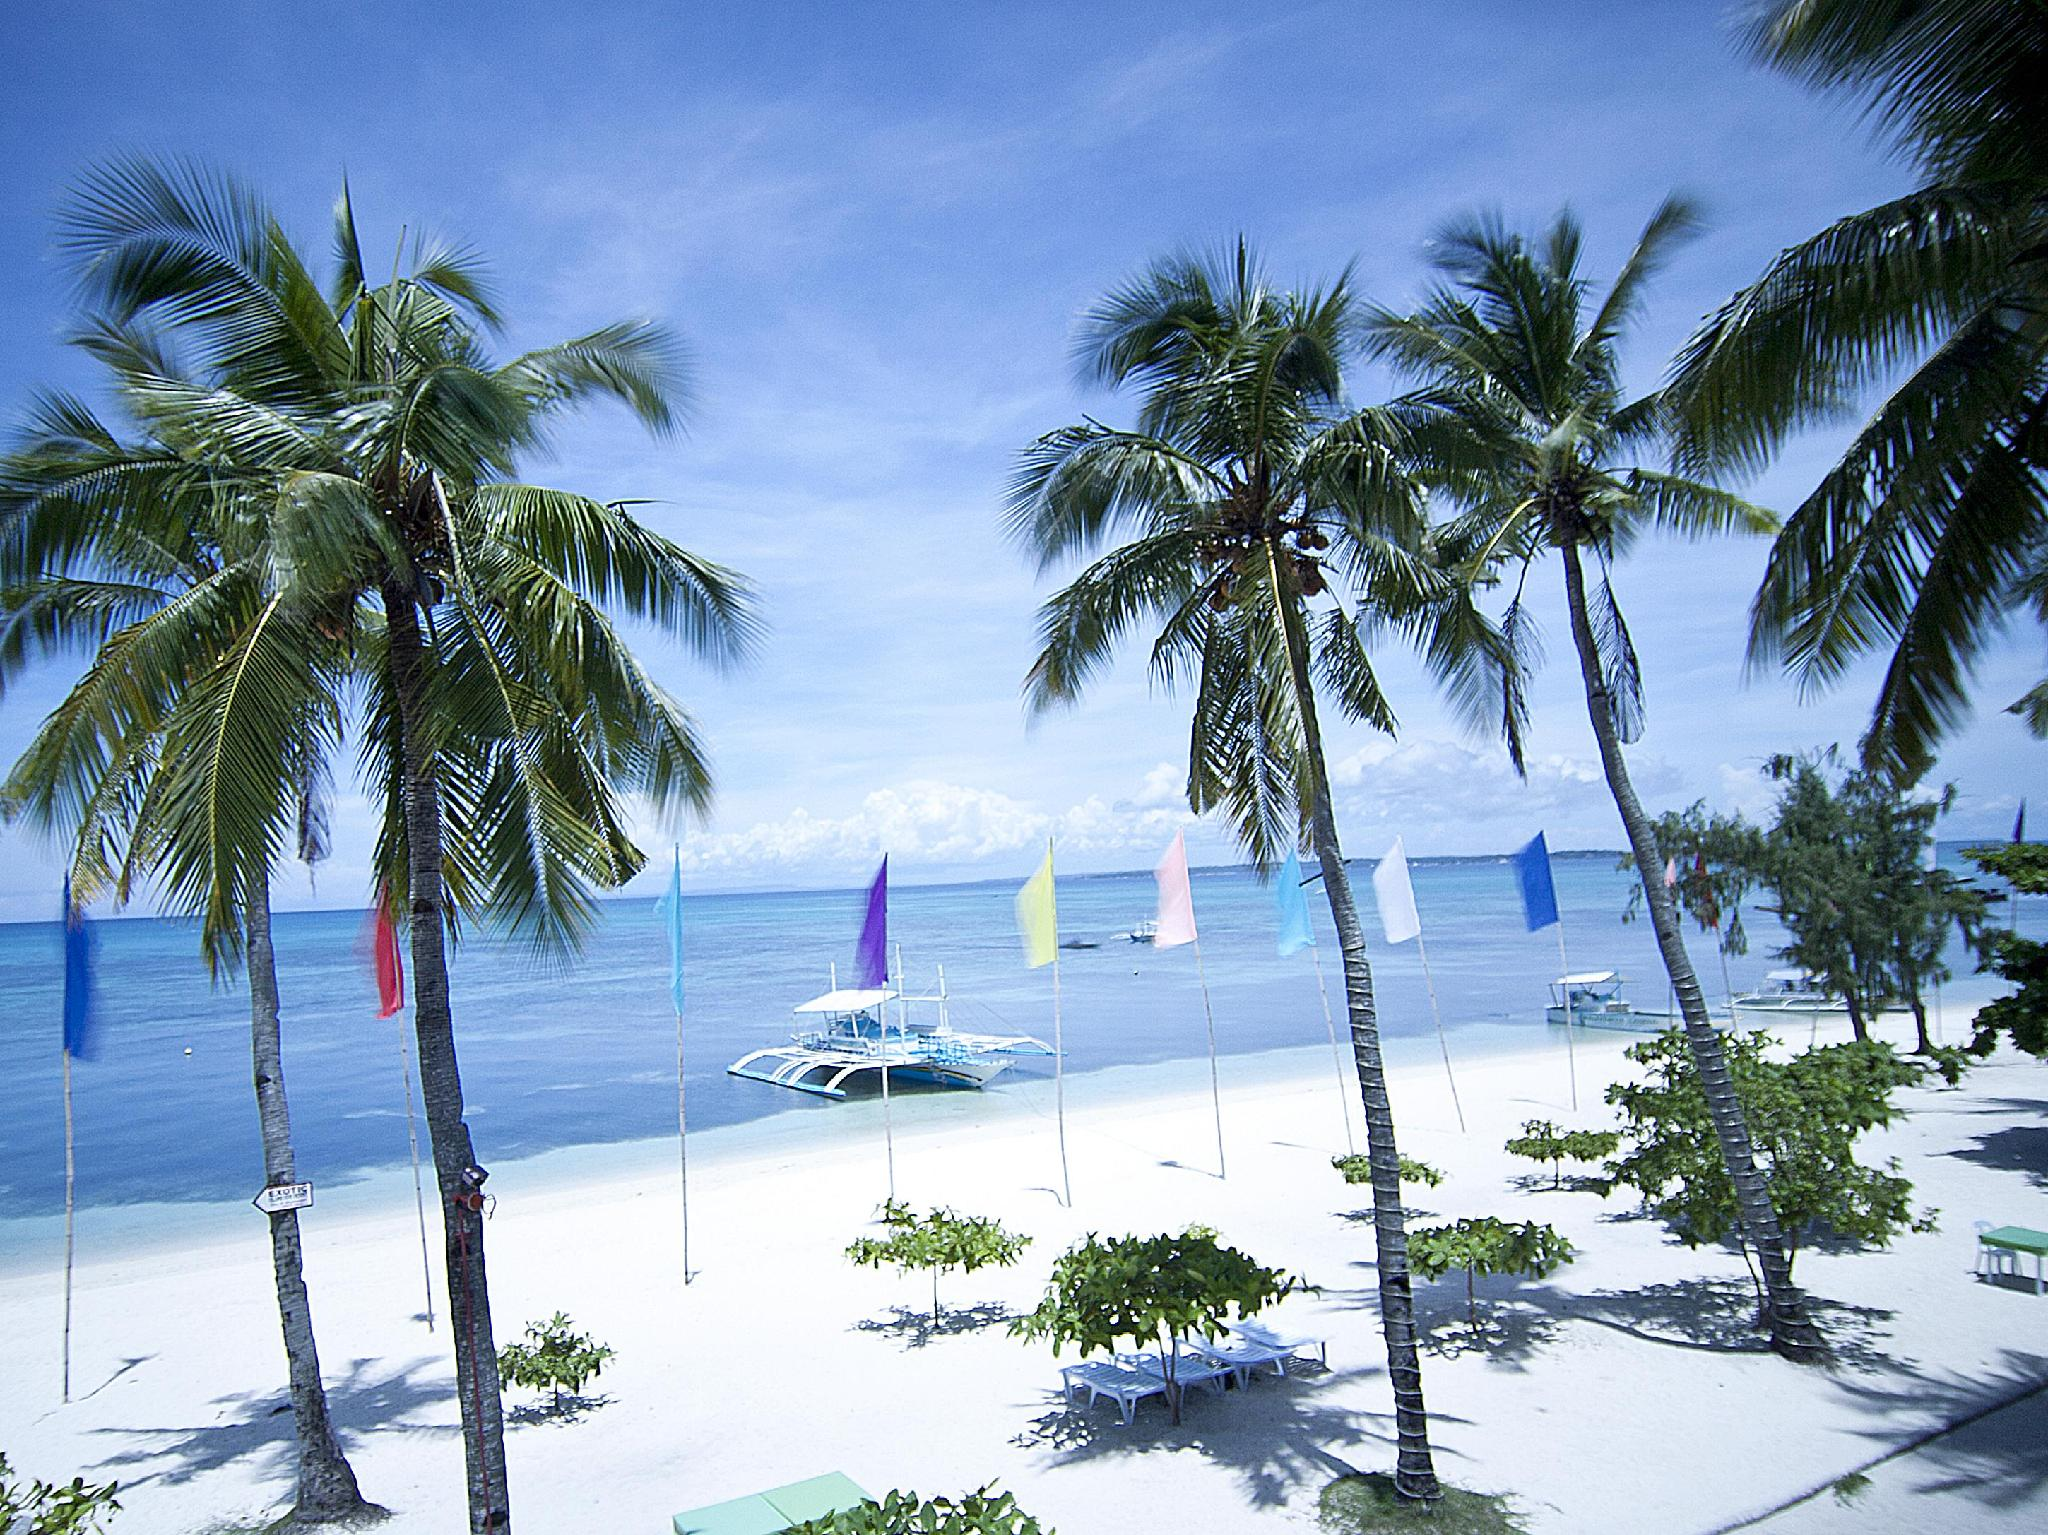 Malapascua Legend Water Sports and Resort Cebú